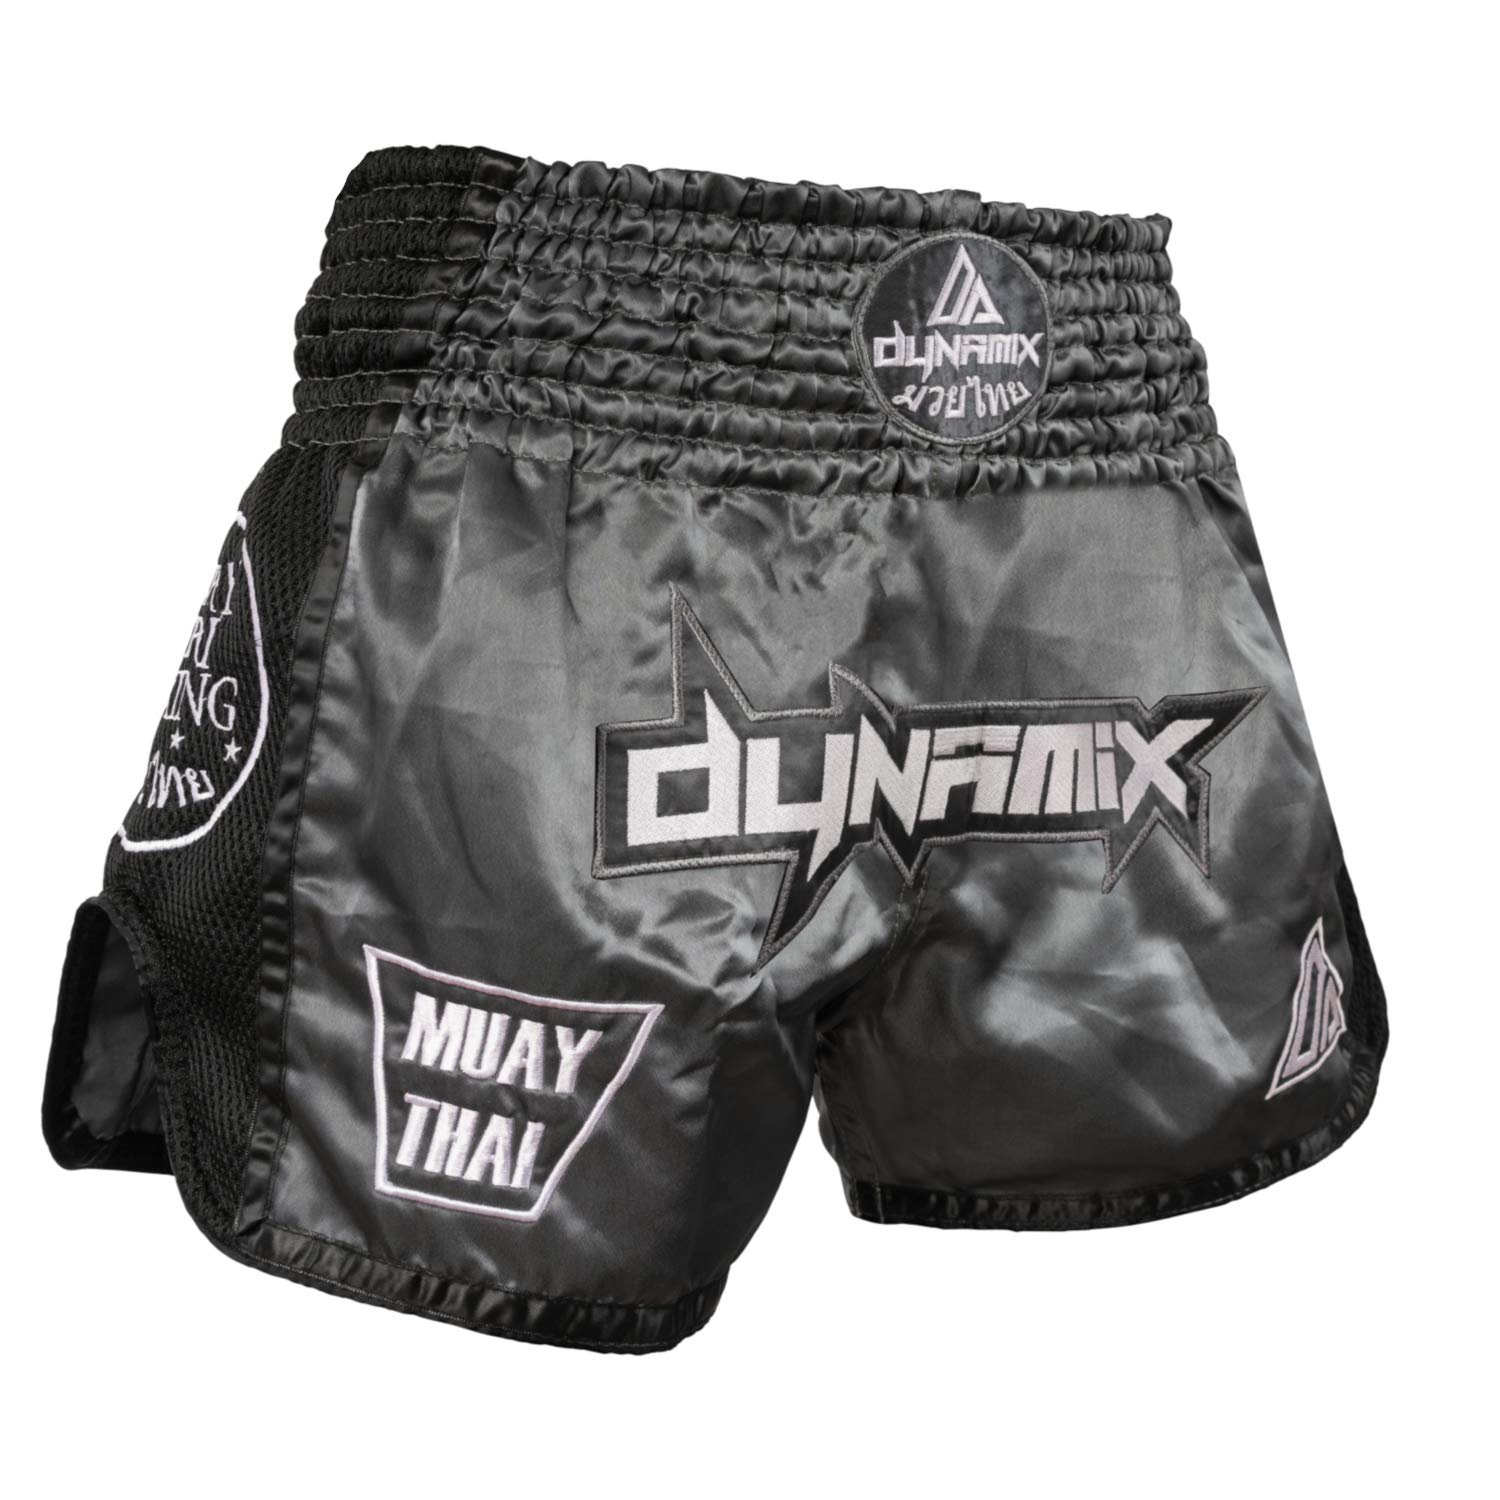 traditional Thaiboxing Short for men with Air-Tech-Material Premium Thai Short for thaiboxing Dynamix Athletics Muay Thai Shorts WARPATH Grey